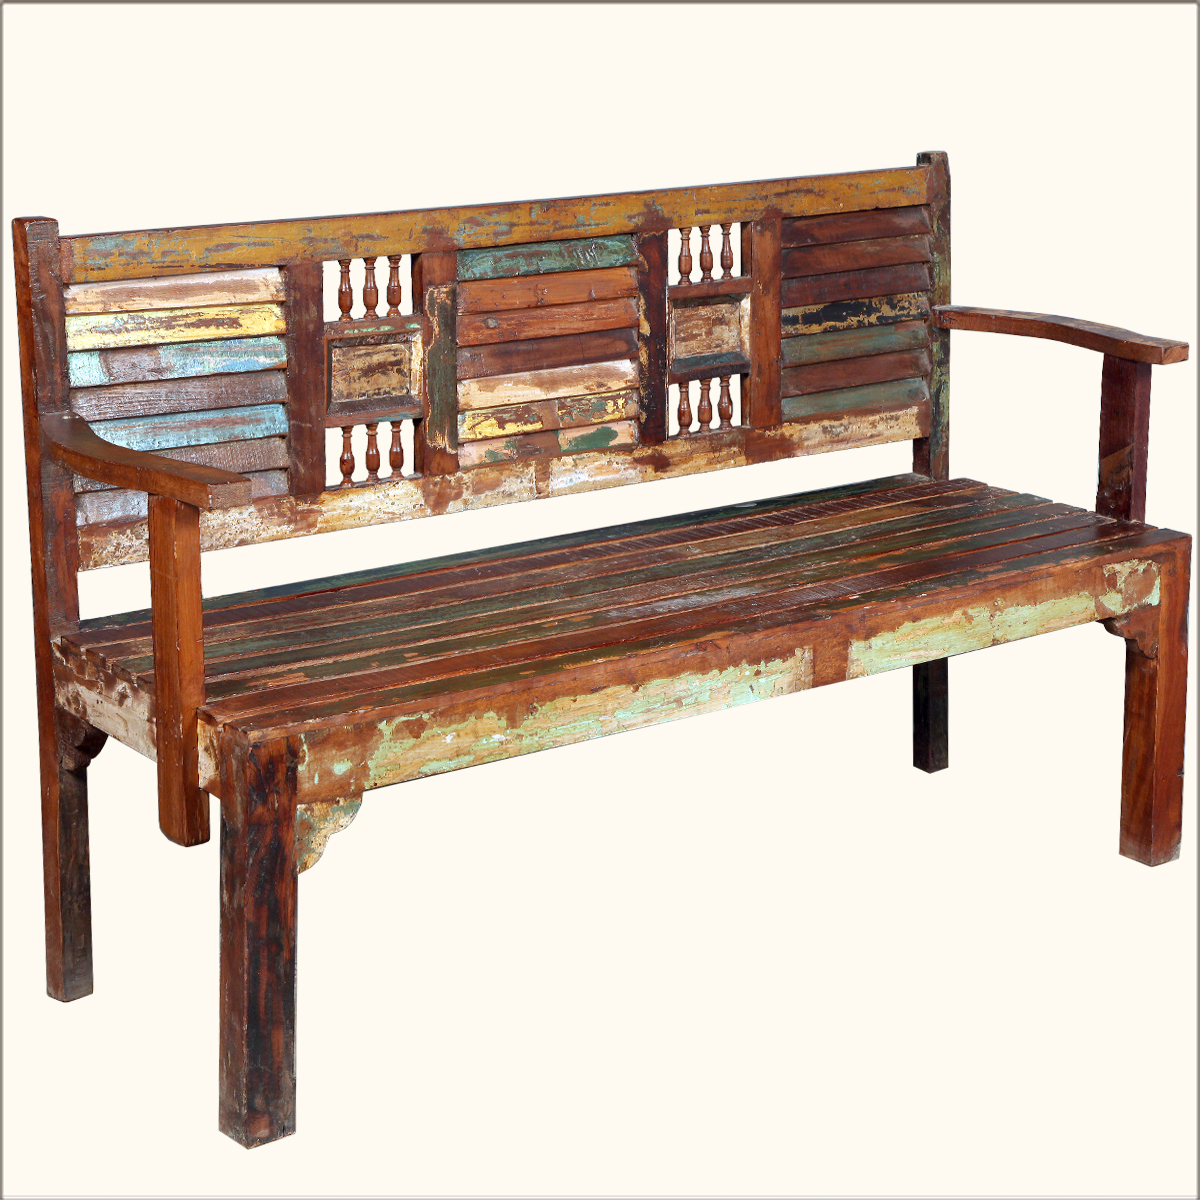 Quot reclaimed wood rustic hand carved arms bench indoor